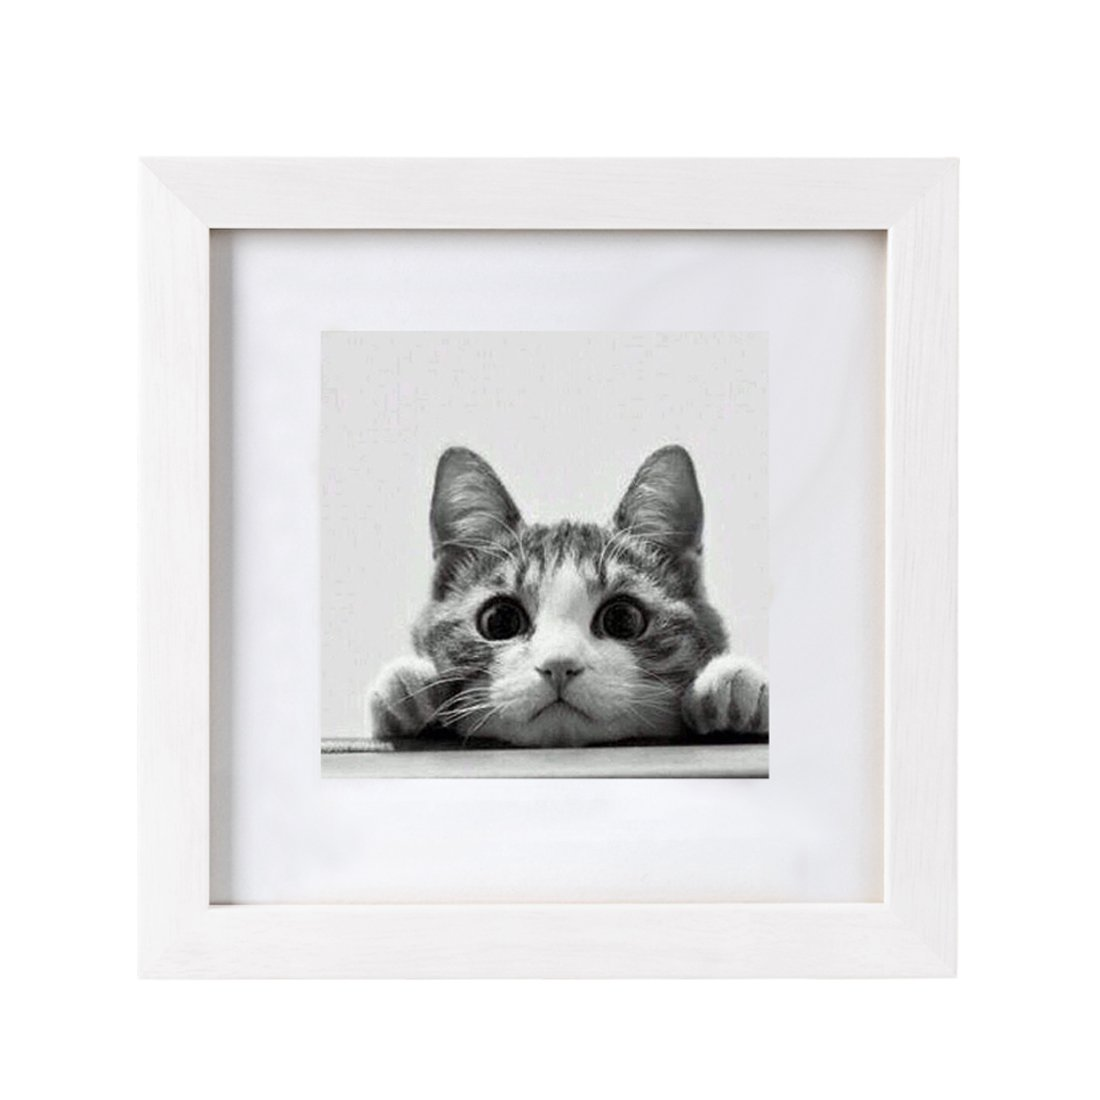 BOJIN 10x10 White Picture Frames Matted to 6x6 Wooden Photo Frames for Wall Hanging by BOJIN